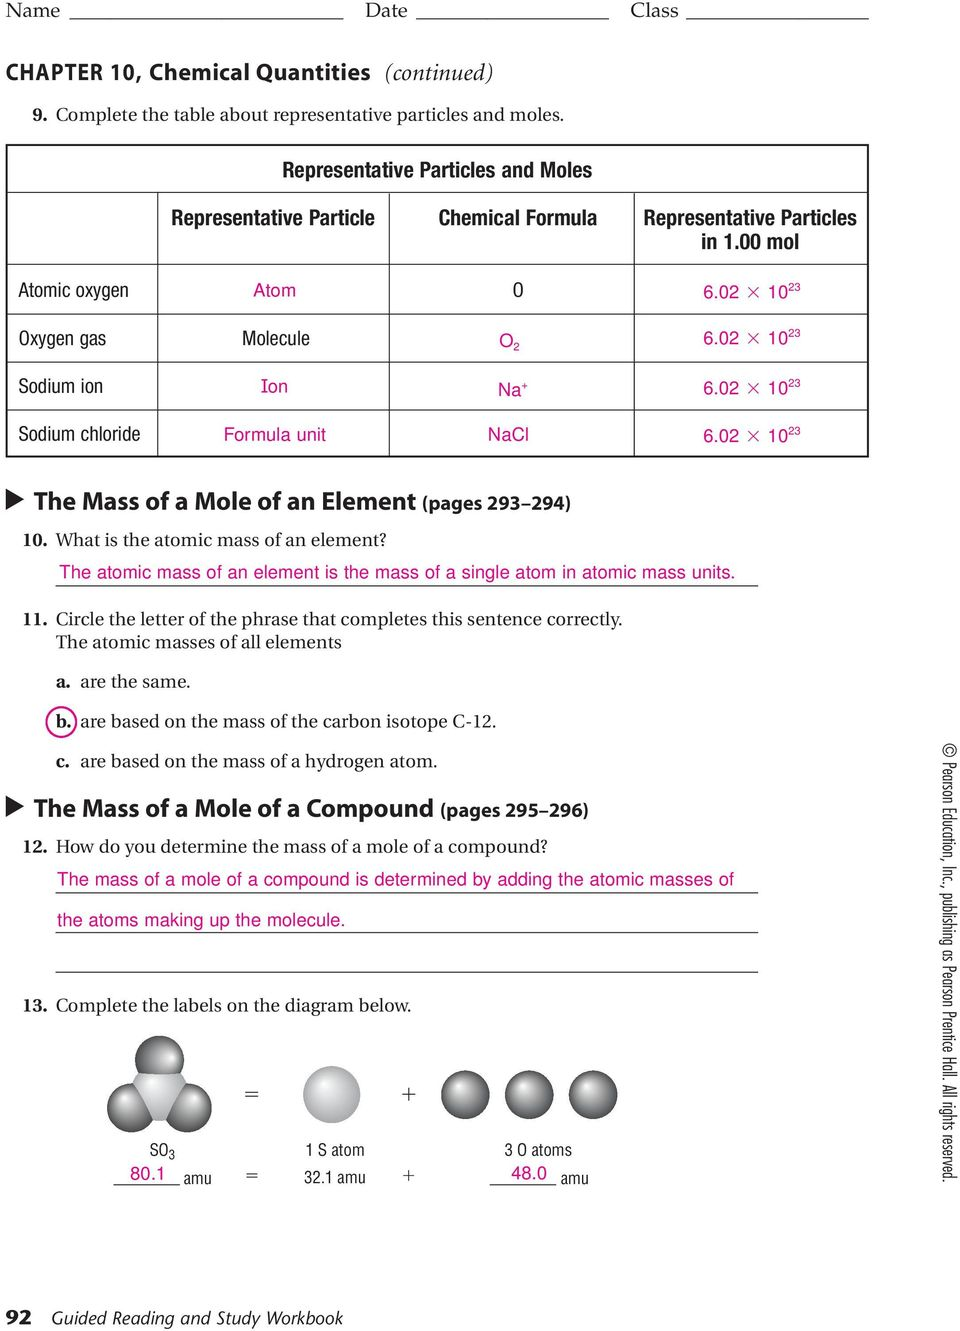 02 10 23 Sodium ion Ion Na + 6.02 10 23 Sodium chloride Formula unit NaCl 6.02 10 23 The Mass of a Mole of an Element (pages 293 294) 10. What is the atomic mass of an element?